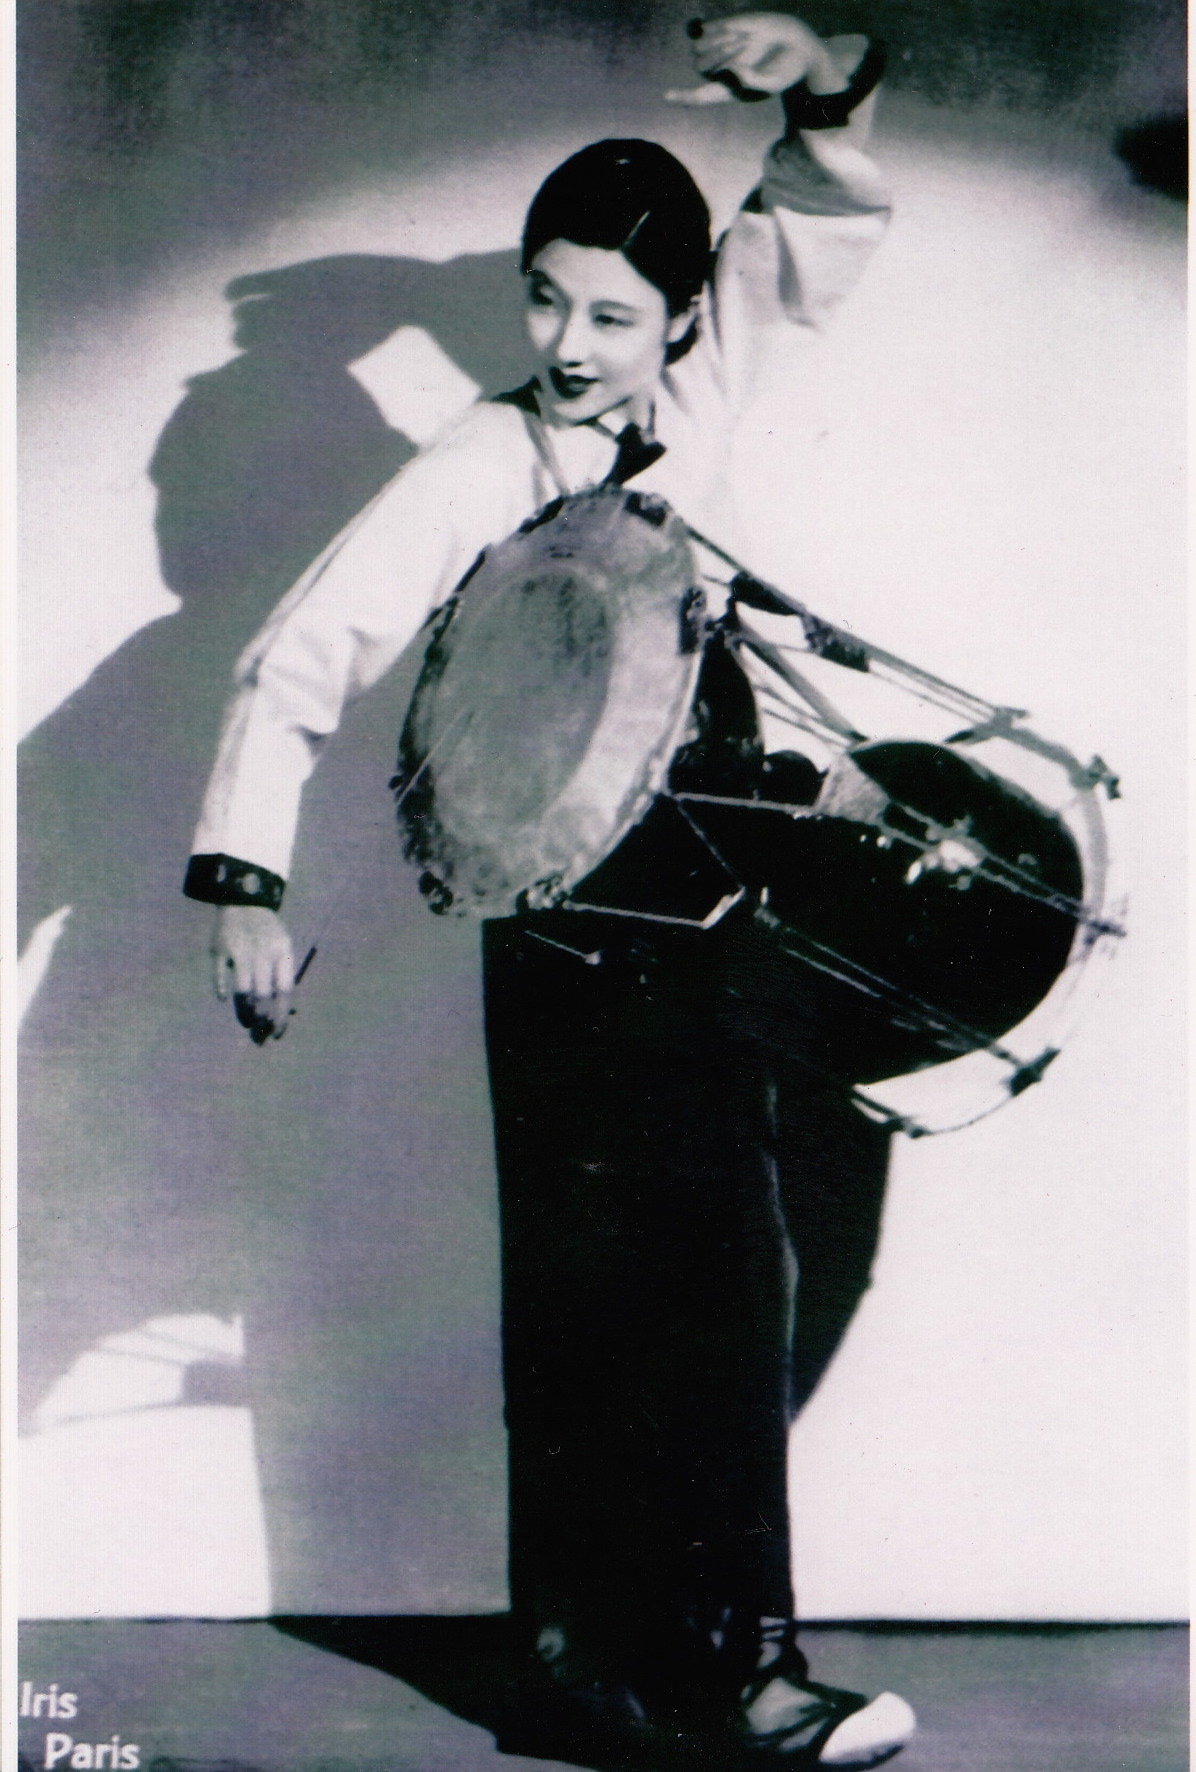 "Choe Seung-hui in ""Hourglass Drum Dance."" Photographer: Studio Iris, Paris. Reproduced with permission from the private collection of Siqintariha"